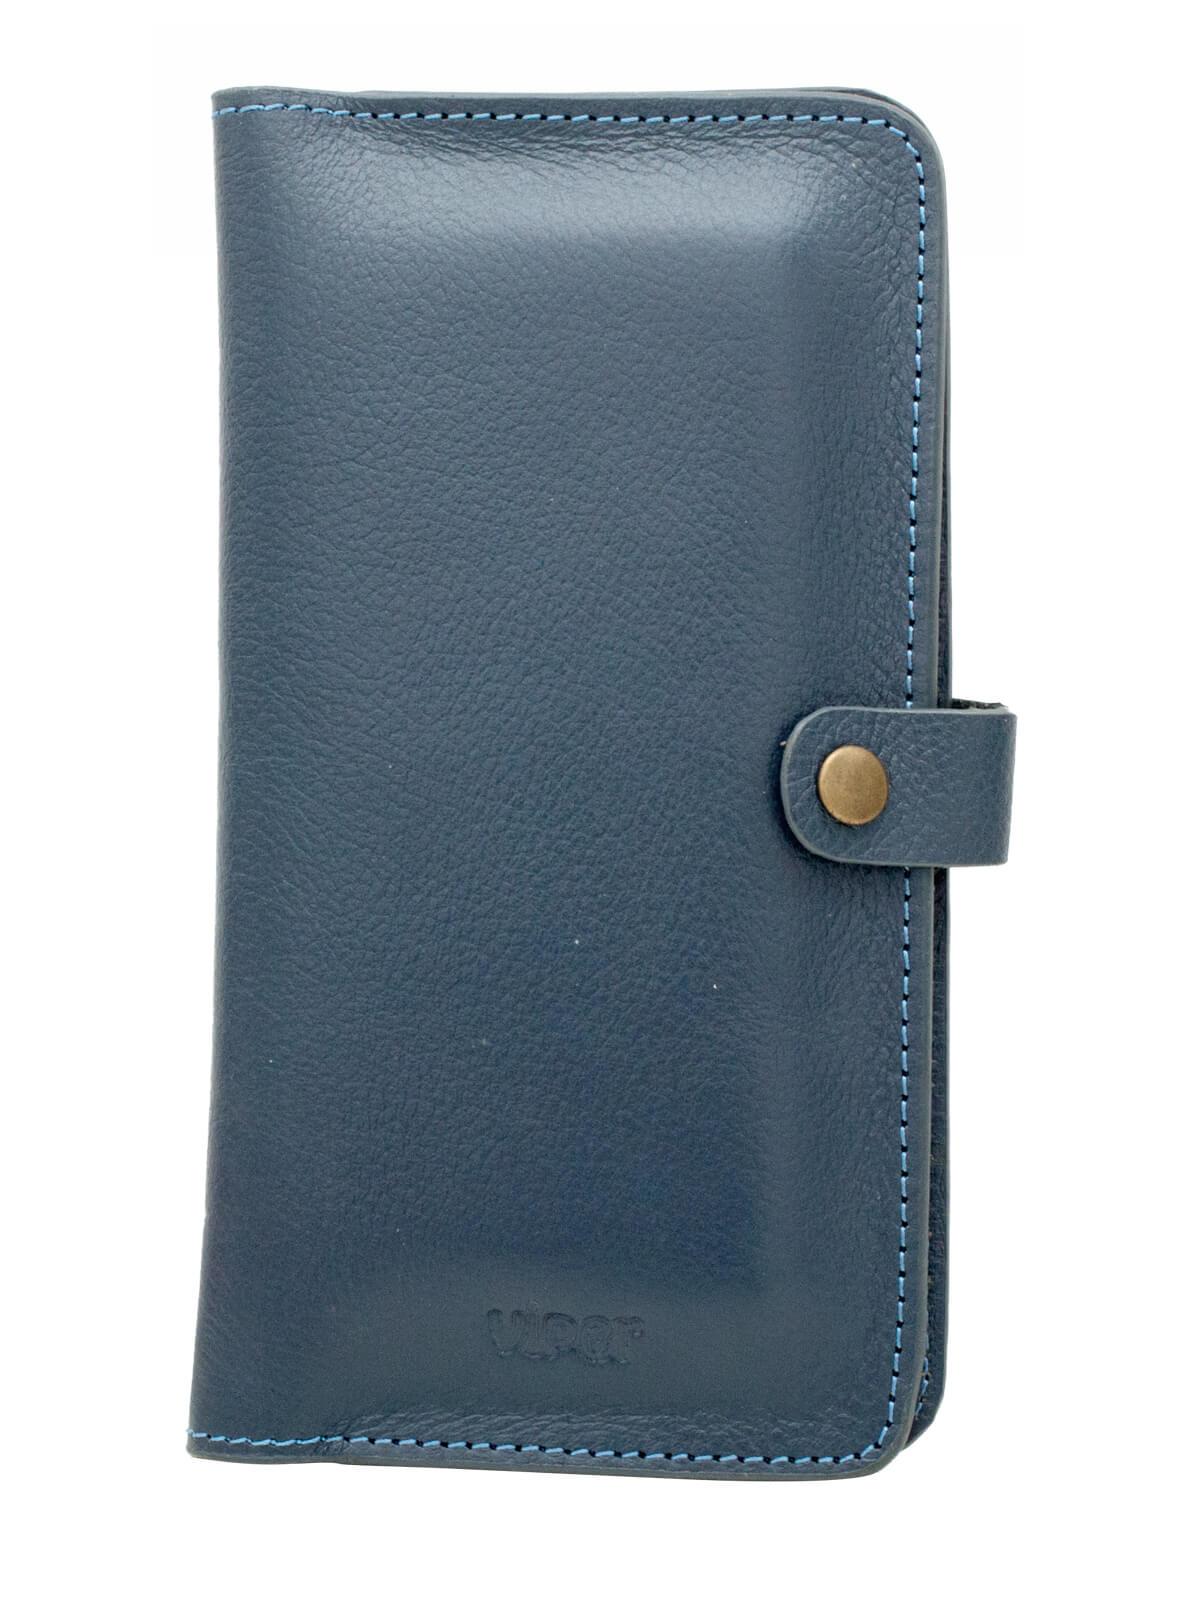 Blue Leather Mobile Wallet